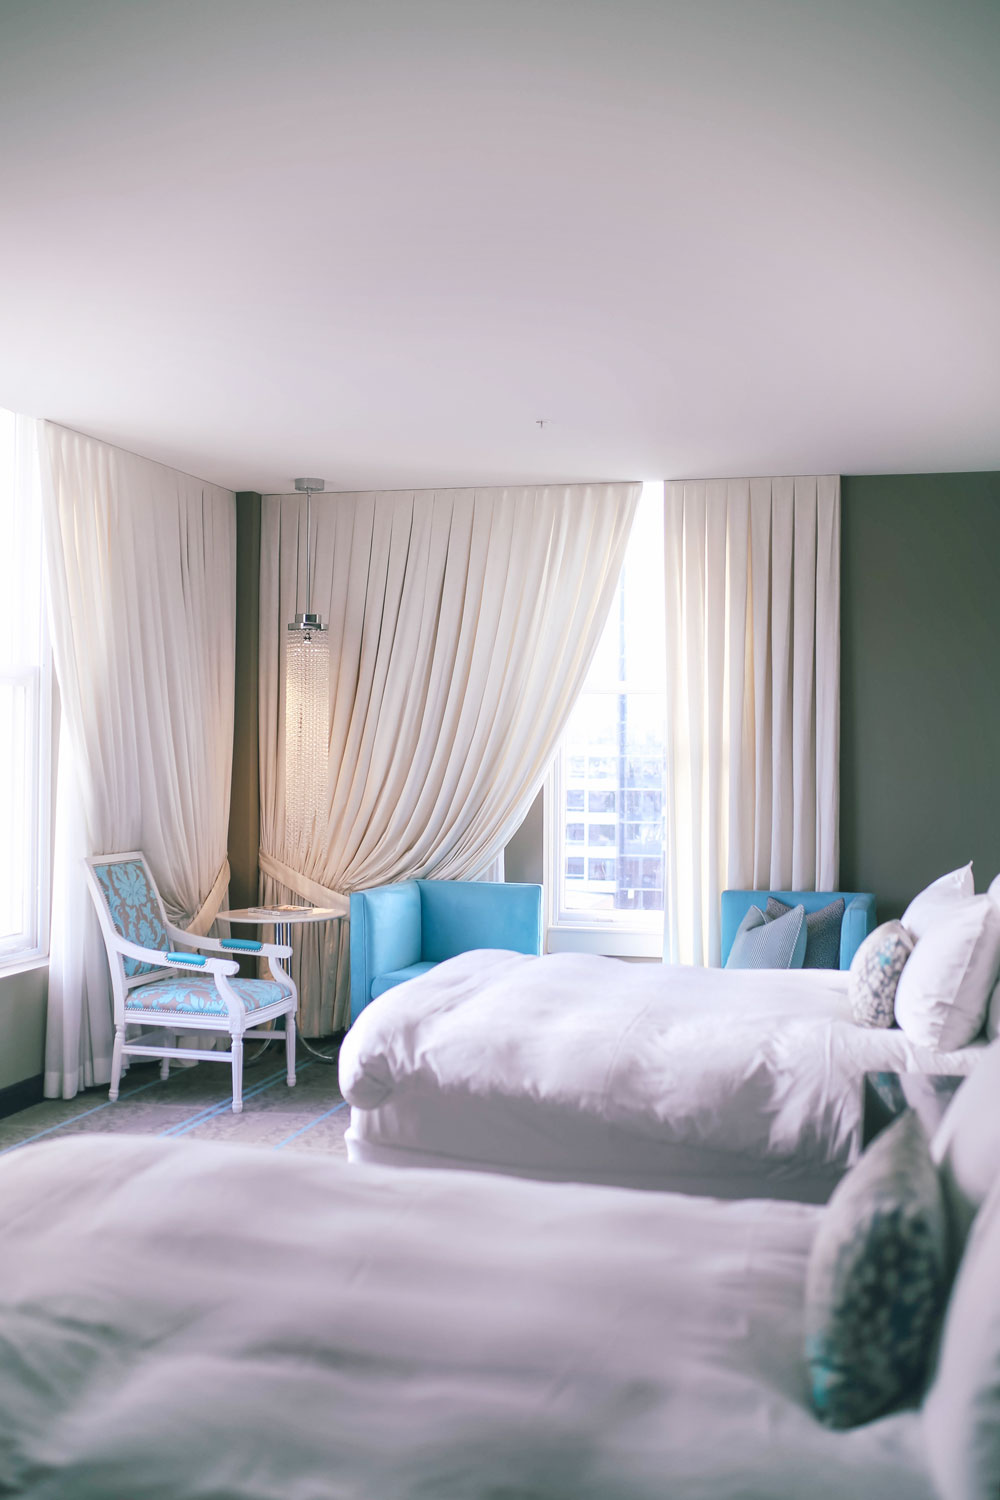 Best hotels in portland, what to do in portland for a weekend, best restaurants in portland, best cocktail bars in portland, the nines suite, portland hotels the nines, where to go for cocktails in portland, blue star donuts, portland departure outdoor deck, best views in portland, departure the nines hotel, nines hotel review by To Vogue or Bust